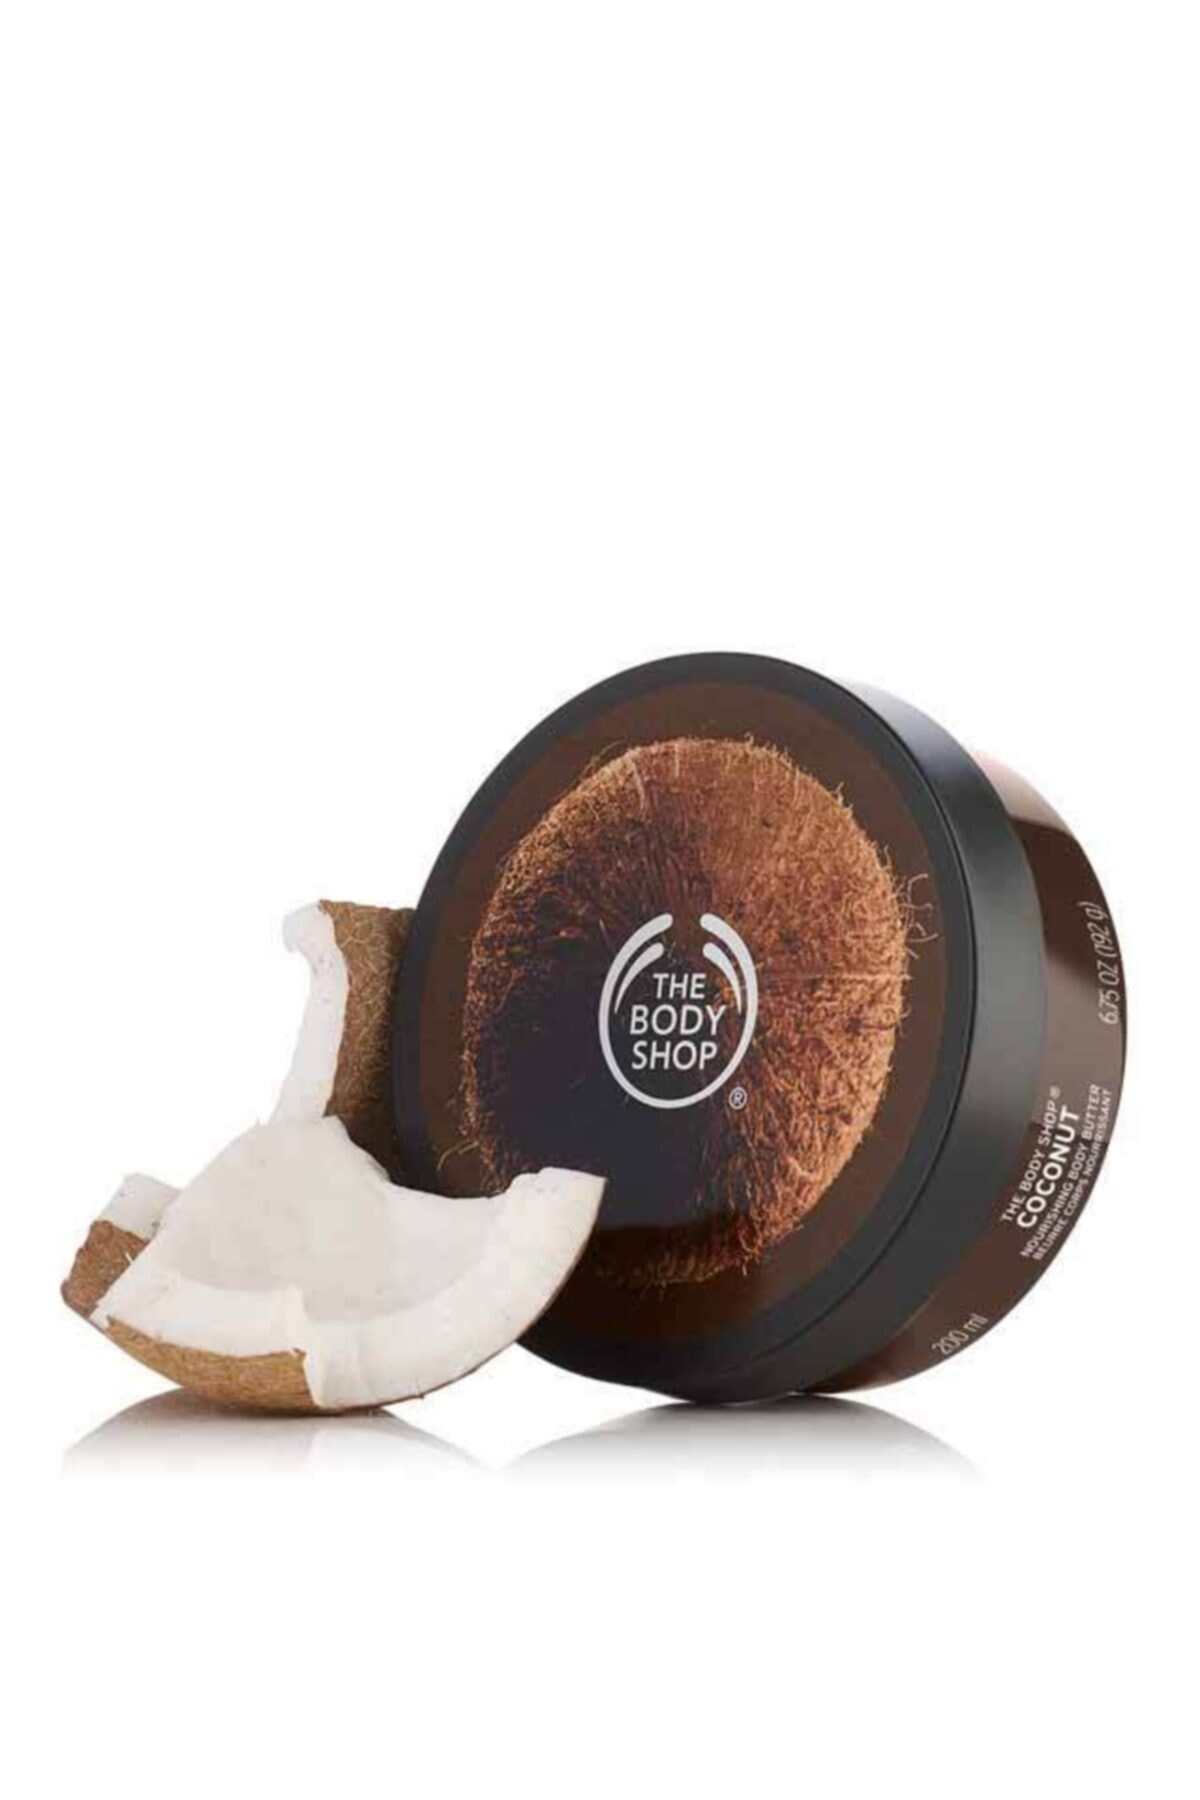 THE BODY SHOP Coconut Body Butter 200ml 2